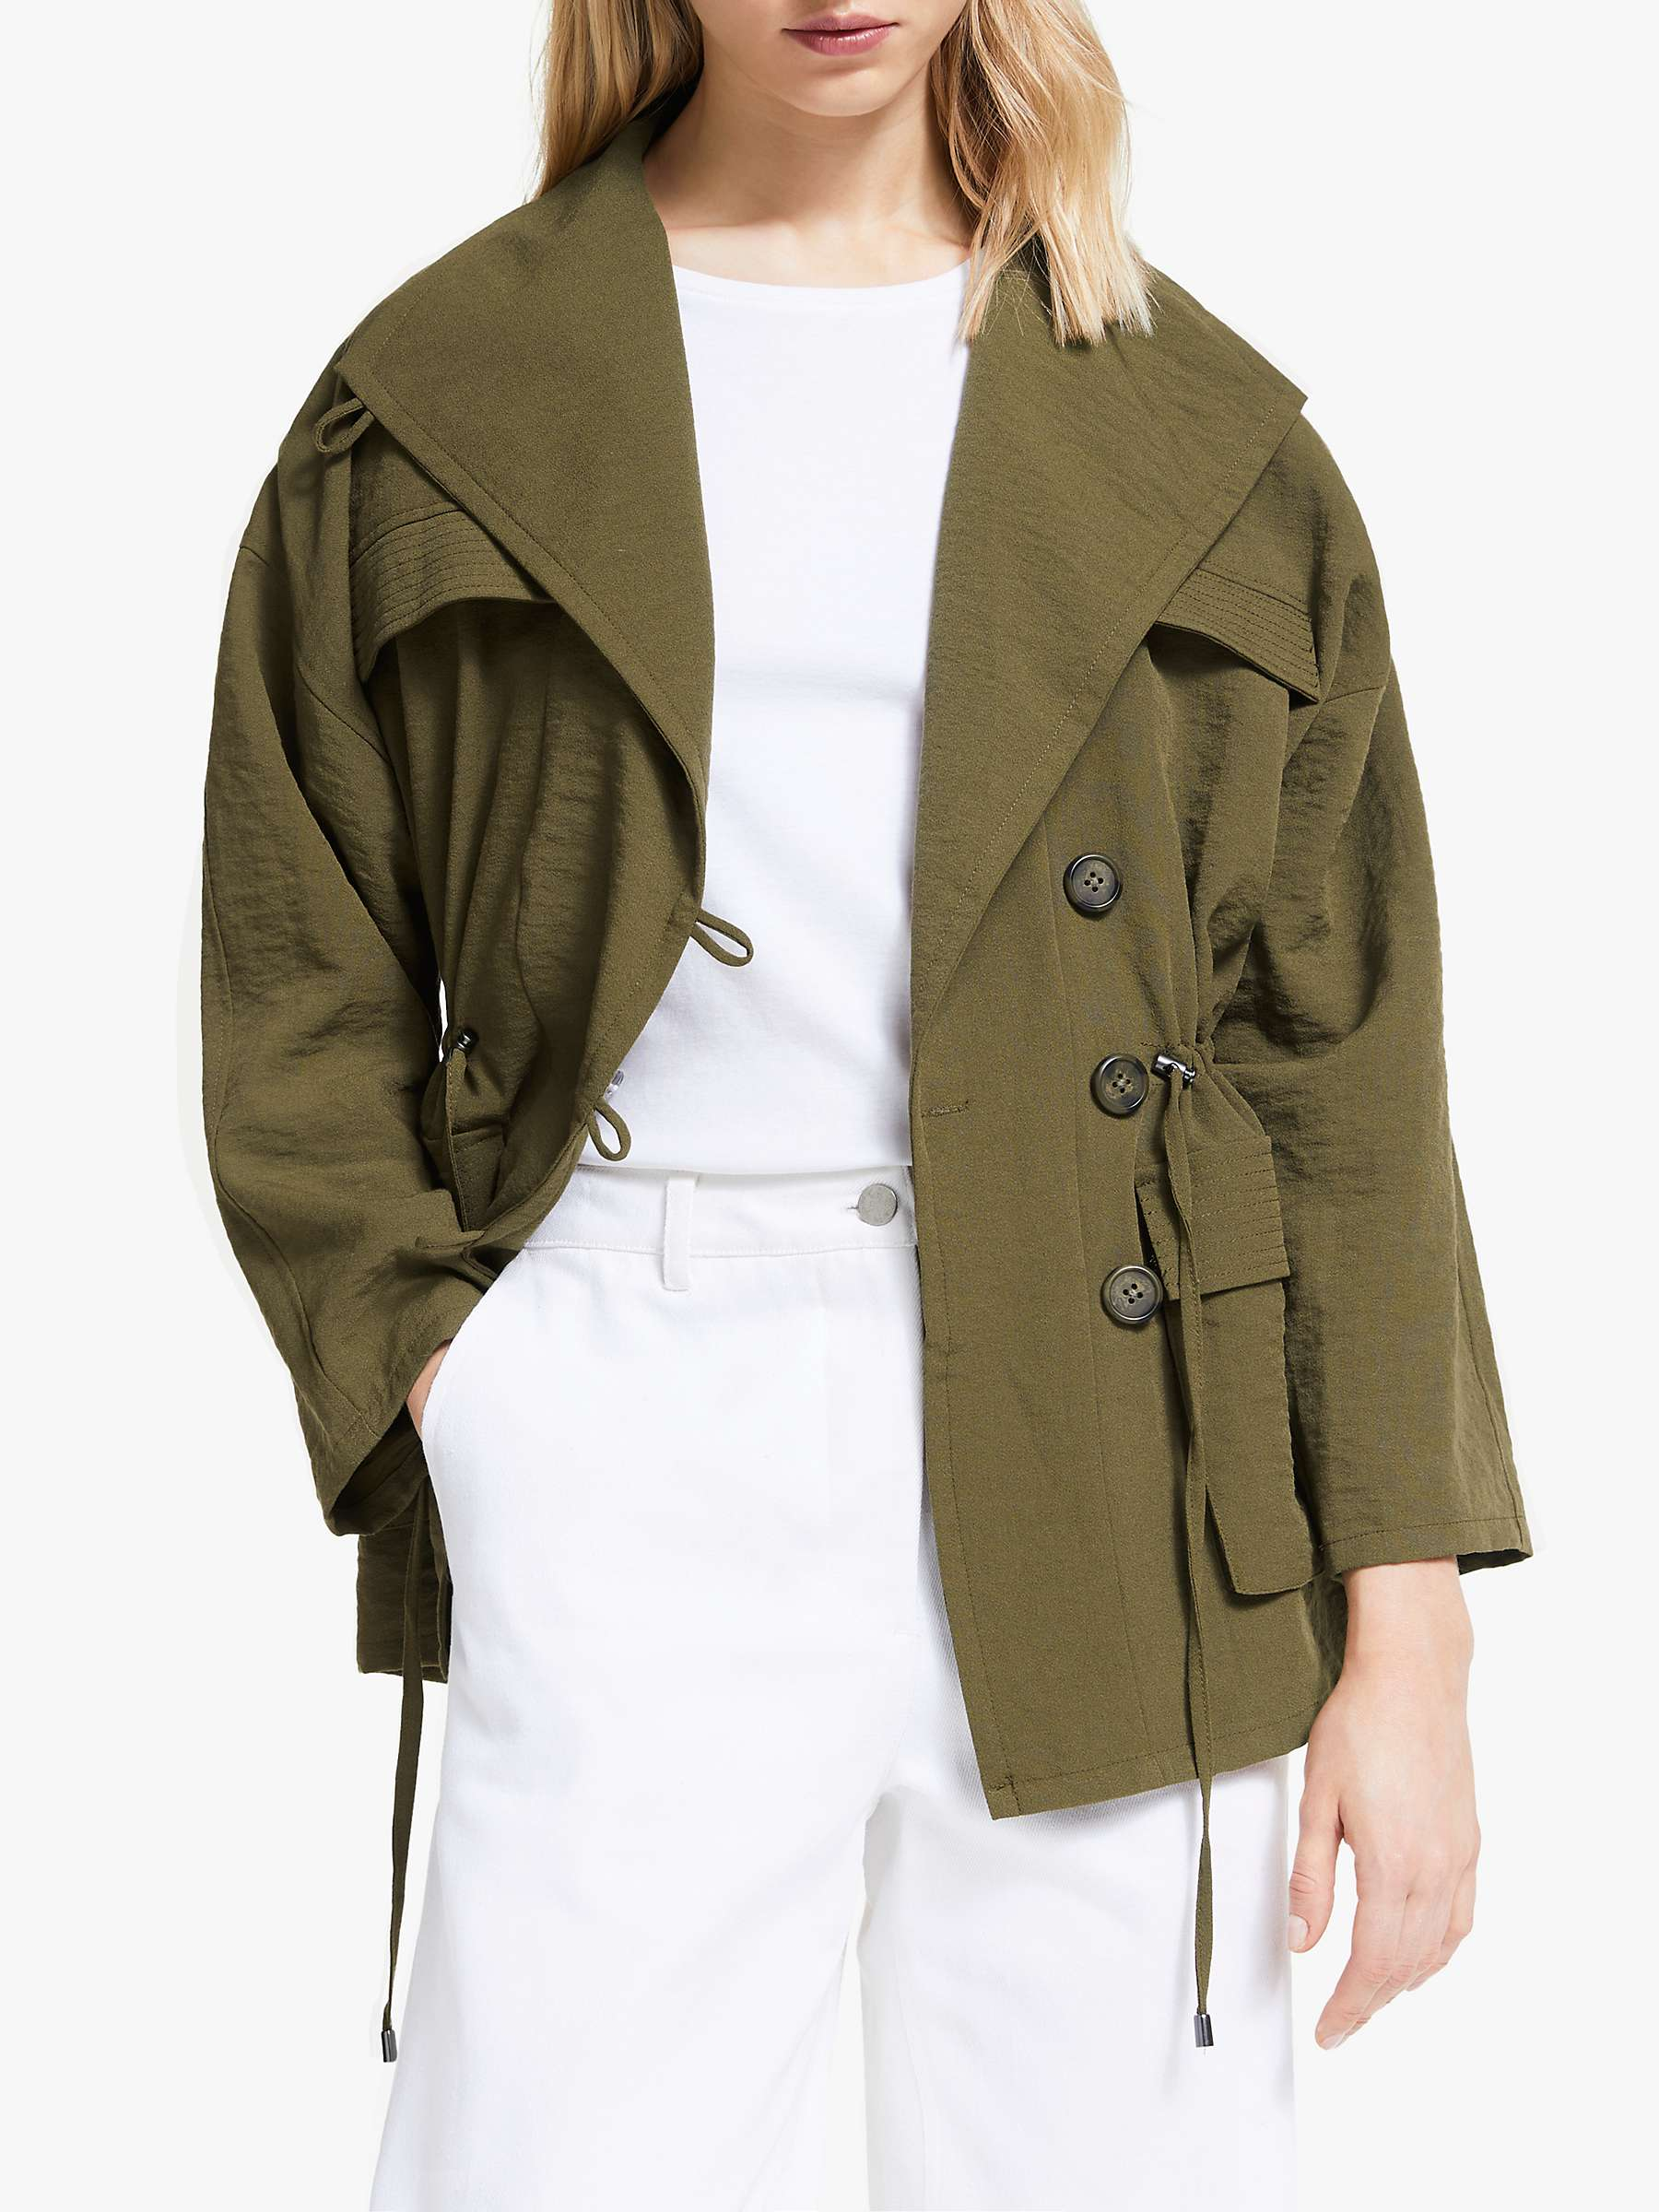 Y.A.S Malla Icons Utility Jacket, Beech by Y.A.S